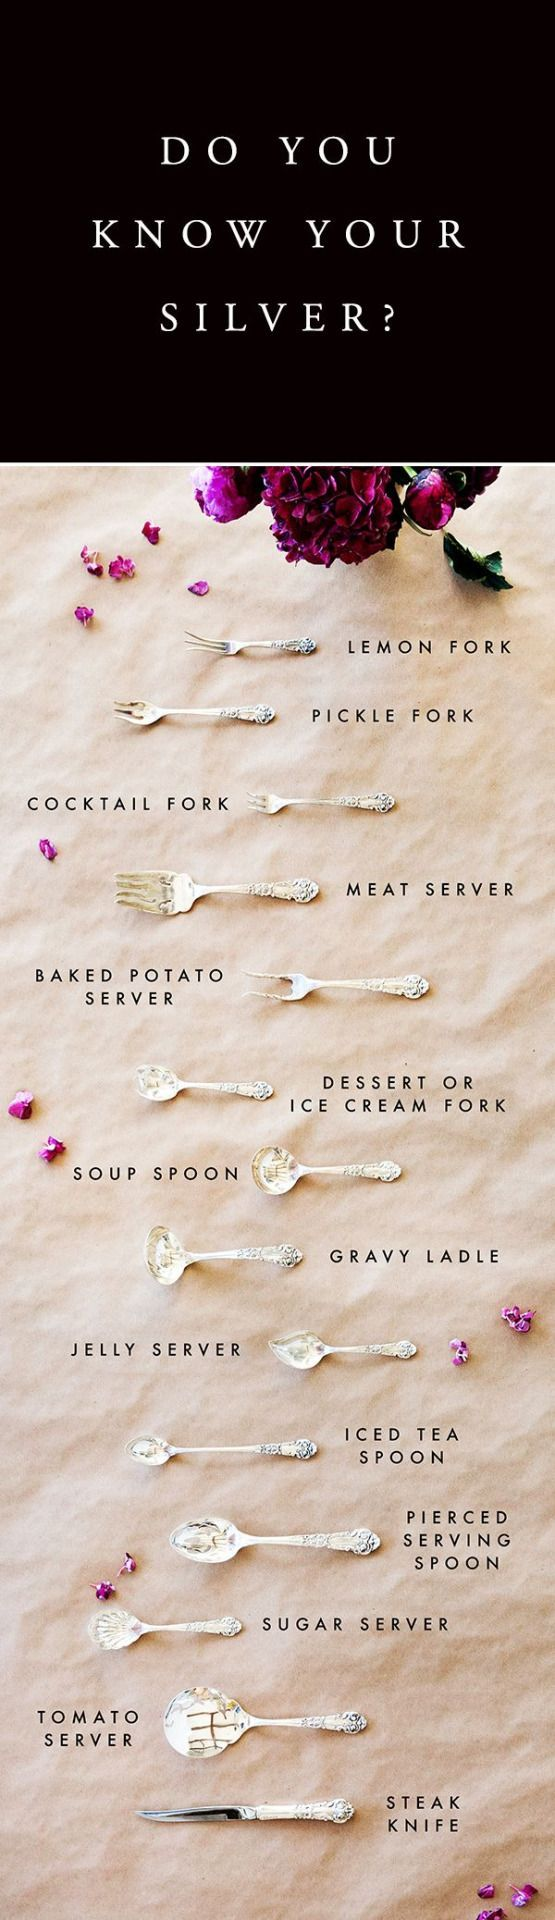 18 best Etiquette images on Pinterest | Manners, Table settings and ...